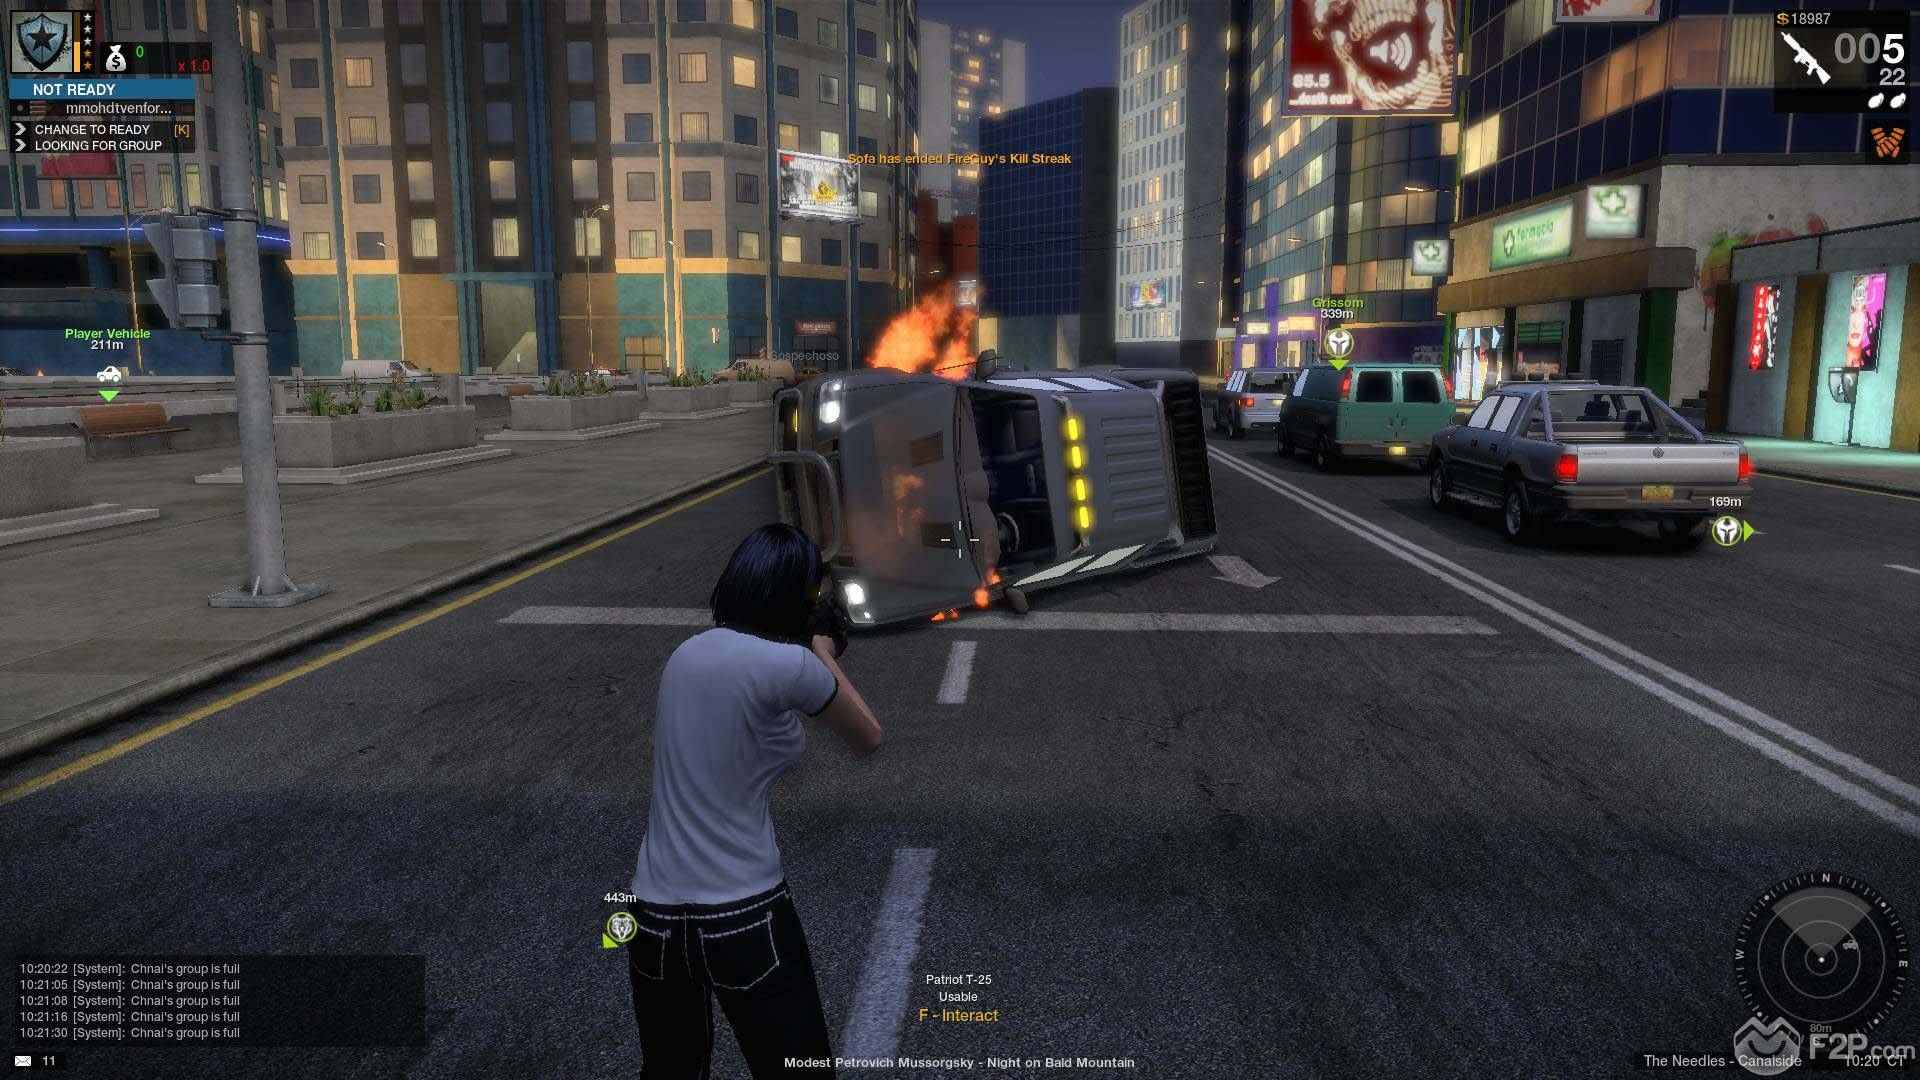 apb matchmaking Two enforcers chase criminals at the docks.